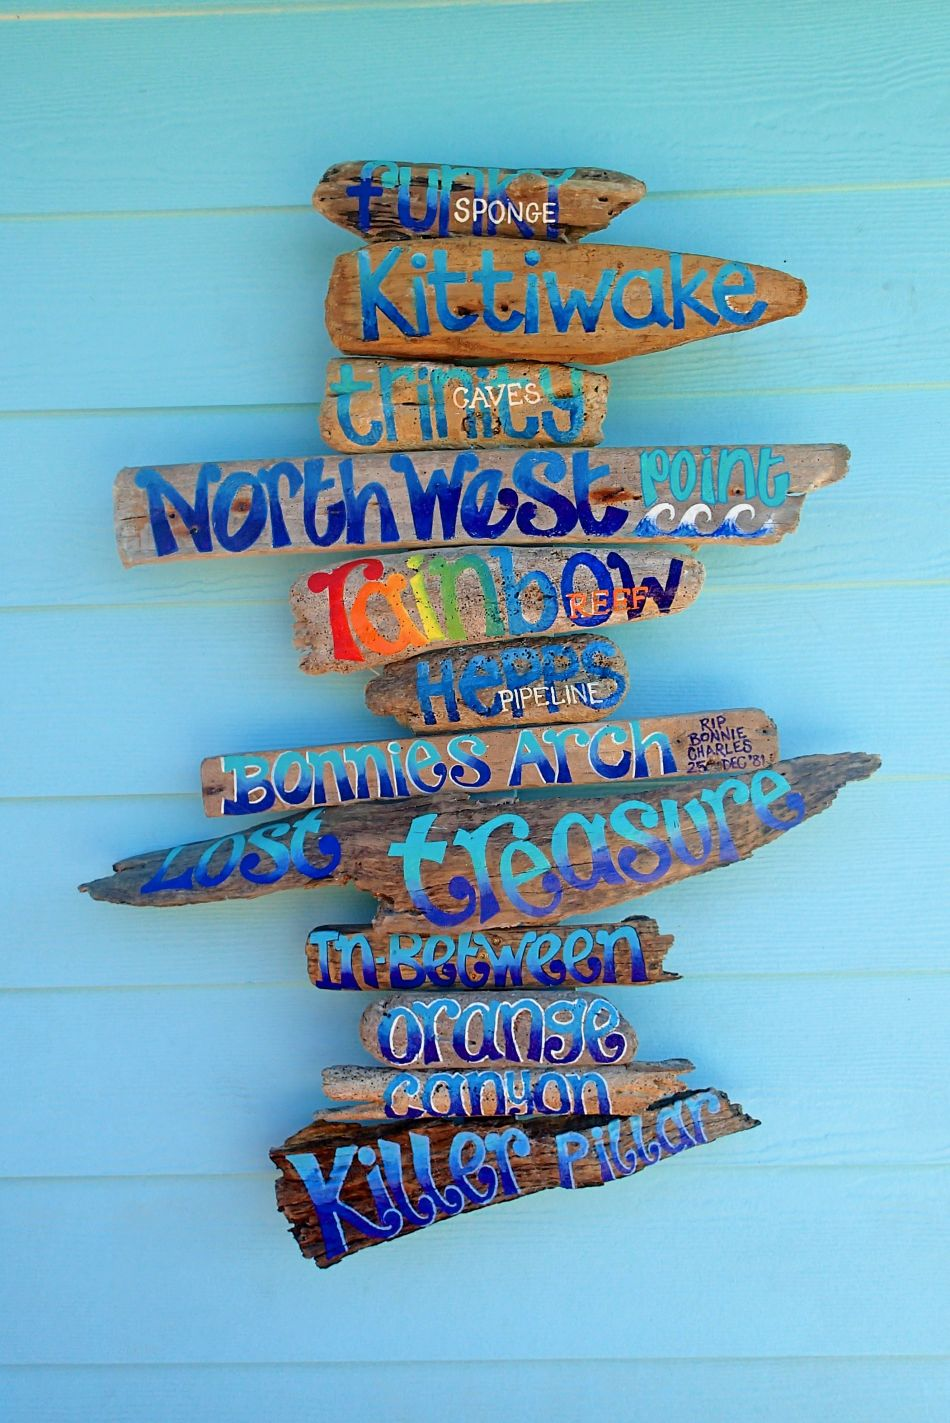 Kate's hand painted driftwood, detailing West side dive sites.